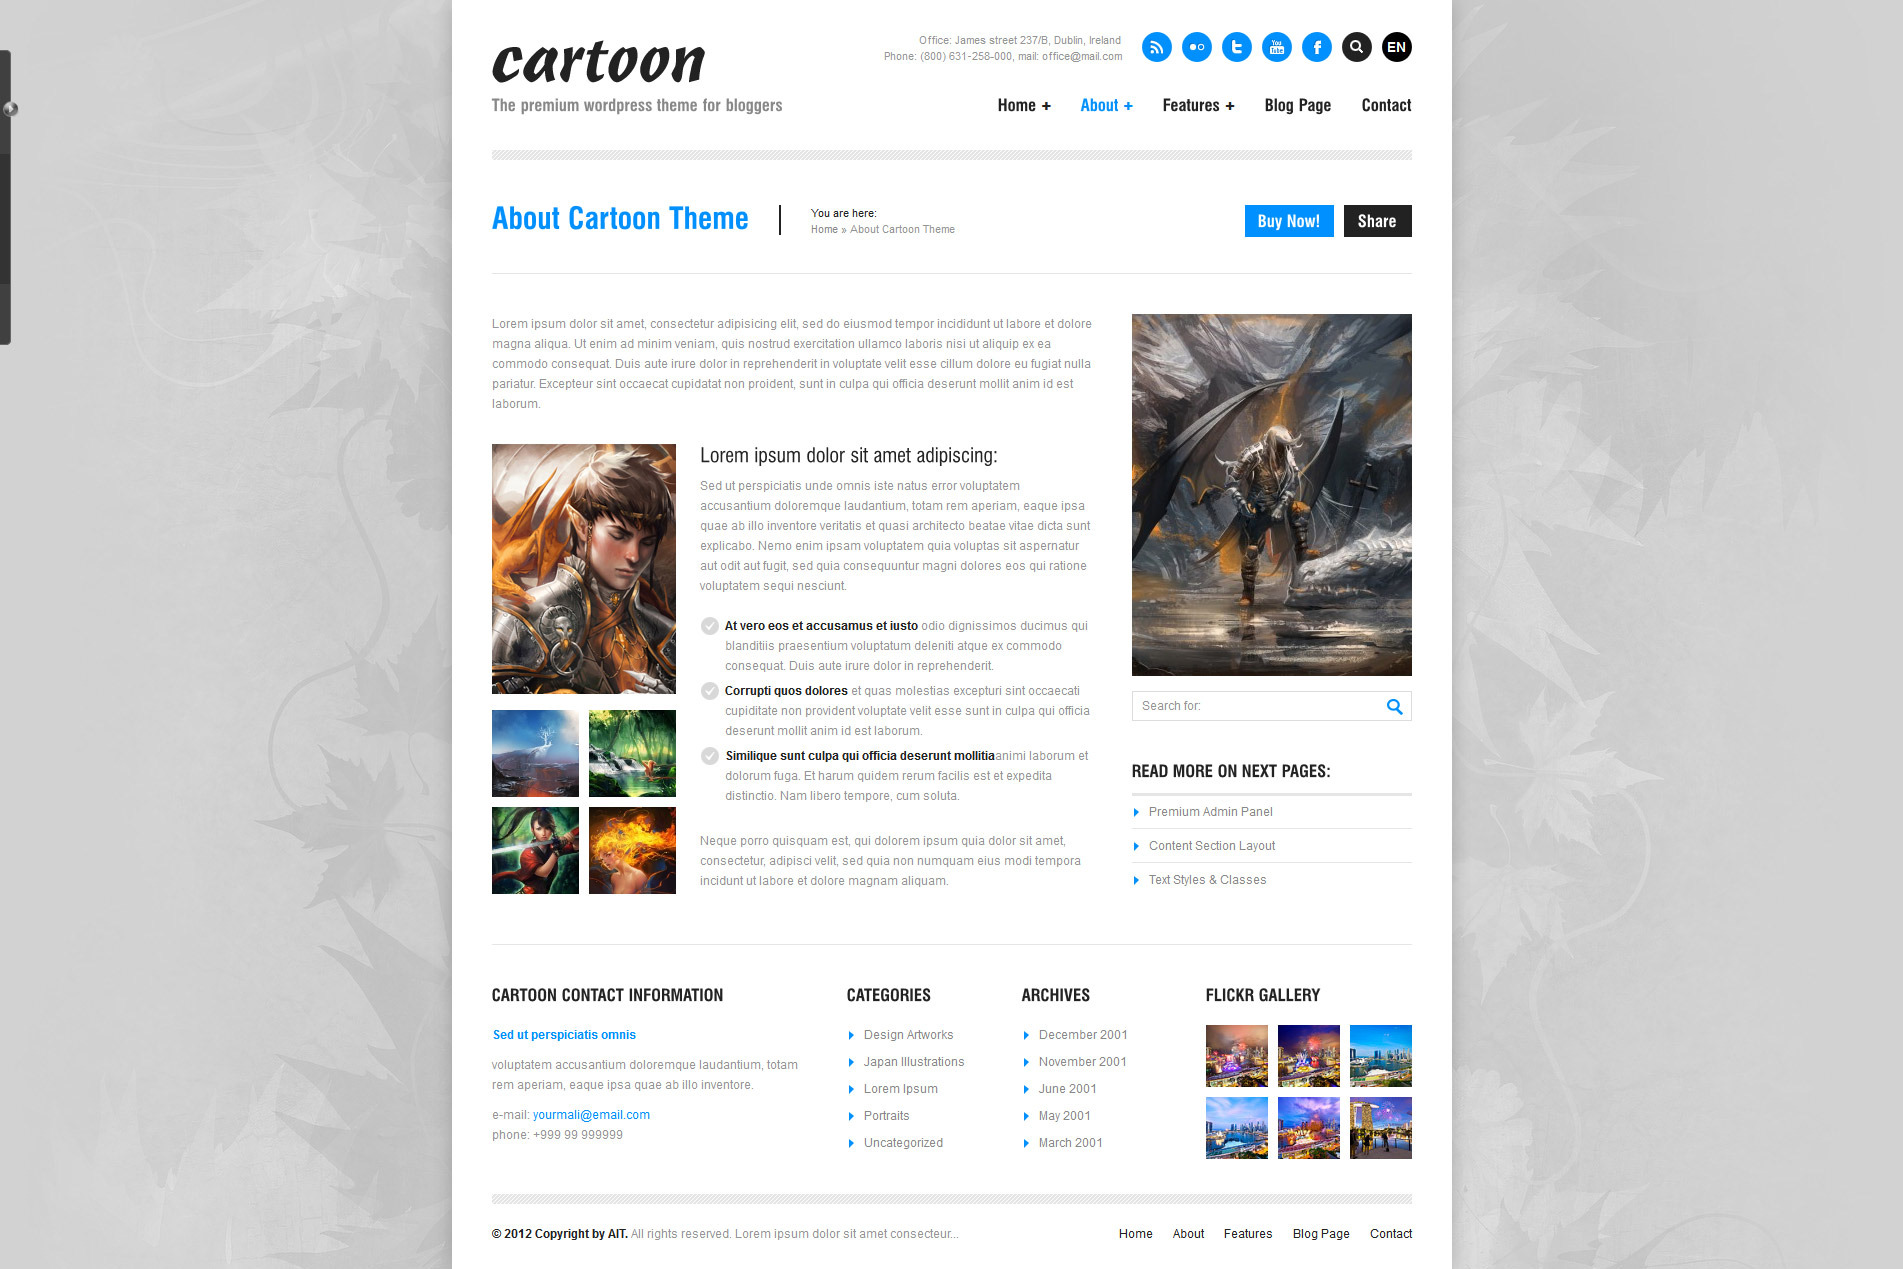 Cartoon: Responsive Portfolio/Blog/Corporate Theme